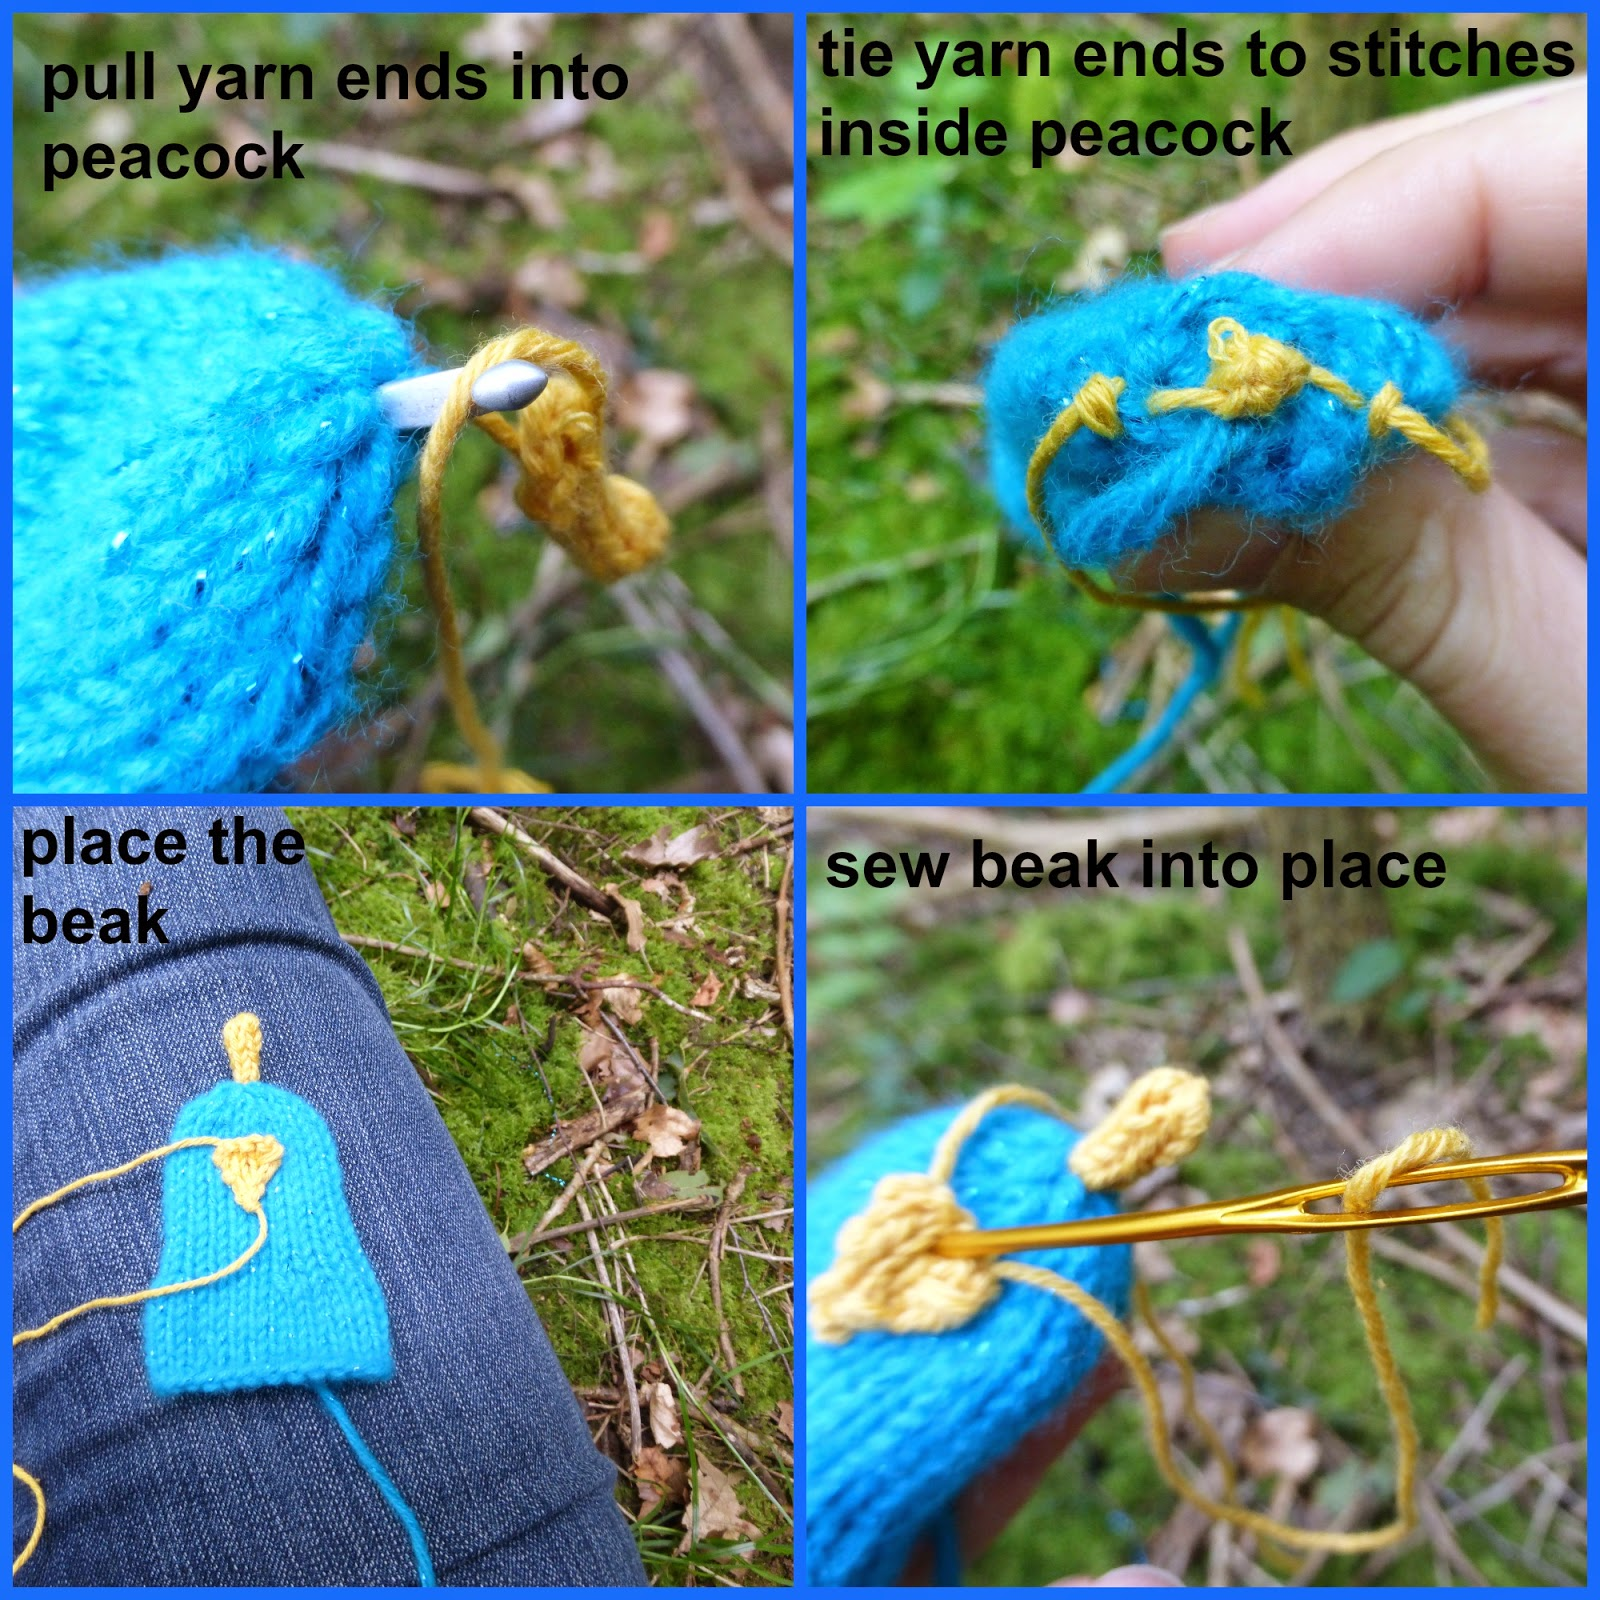 How To Knit A Peacock Free Pattern And Tutorial Yarn Birdy Slip Knot Diagram Additionally Stitch Crochet Eyes Use Embroidery Thread Needle Add Simple On Either Side Of The Beak